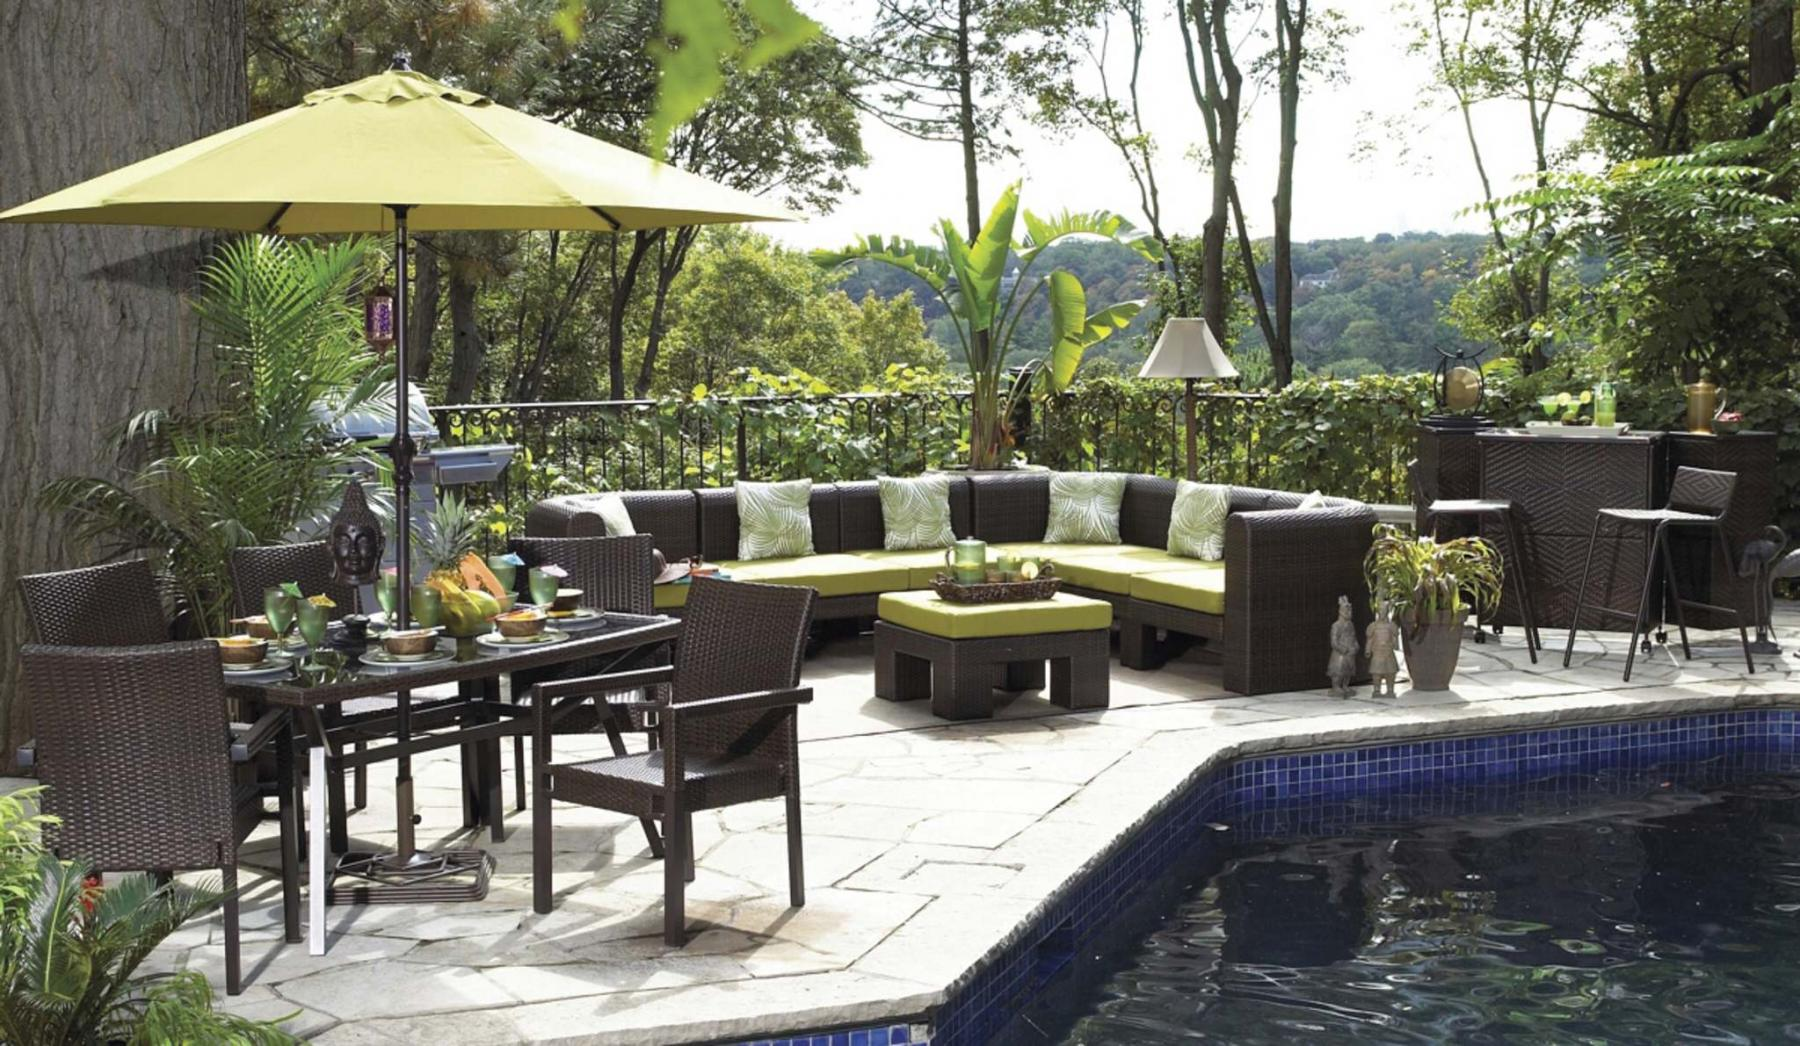 <p>Canadian Tire </p><p>High-density polyethylene plastic outdoor furniture is sturdy and easy to clean. </p>